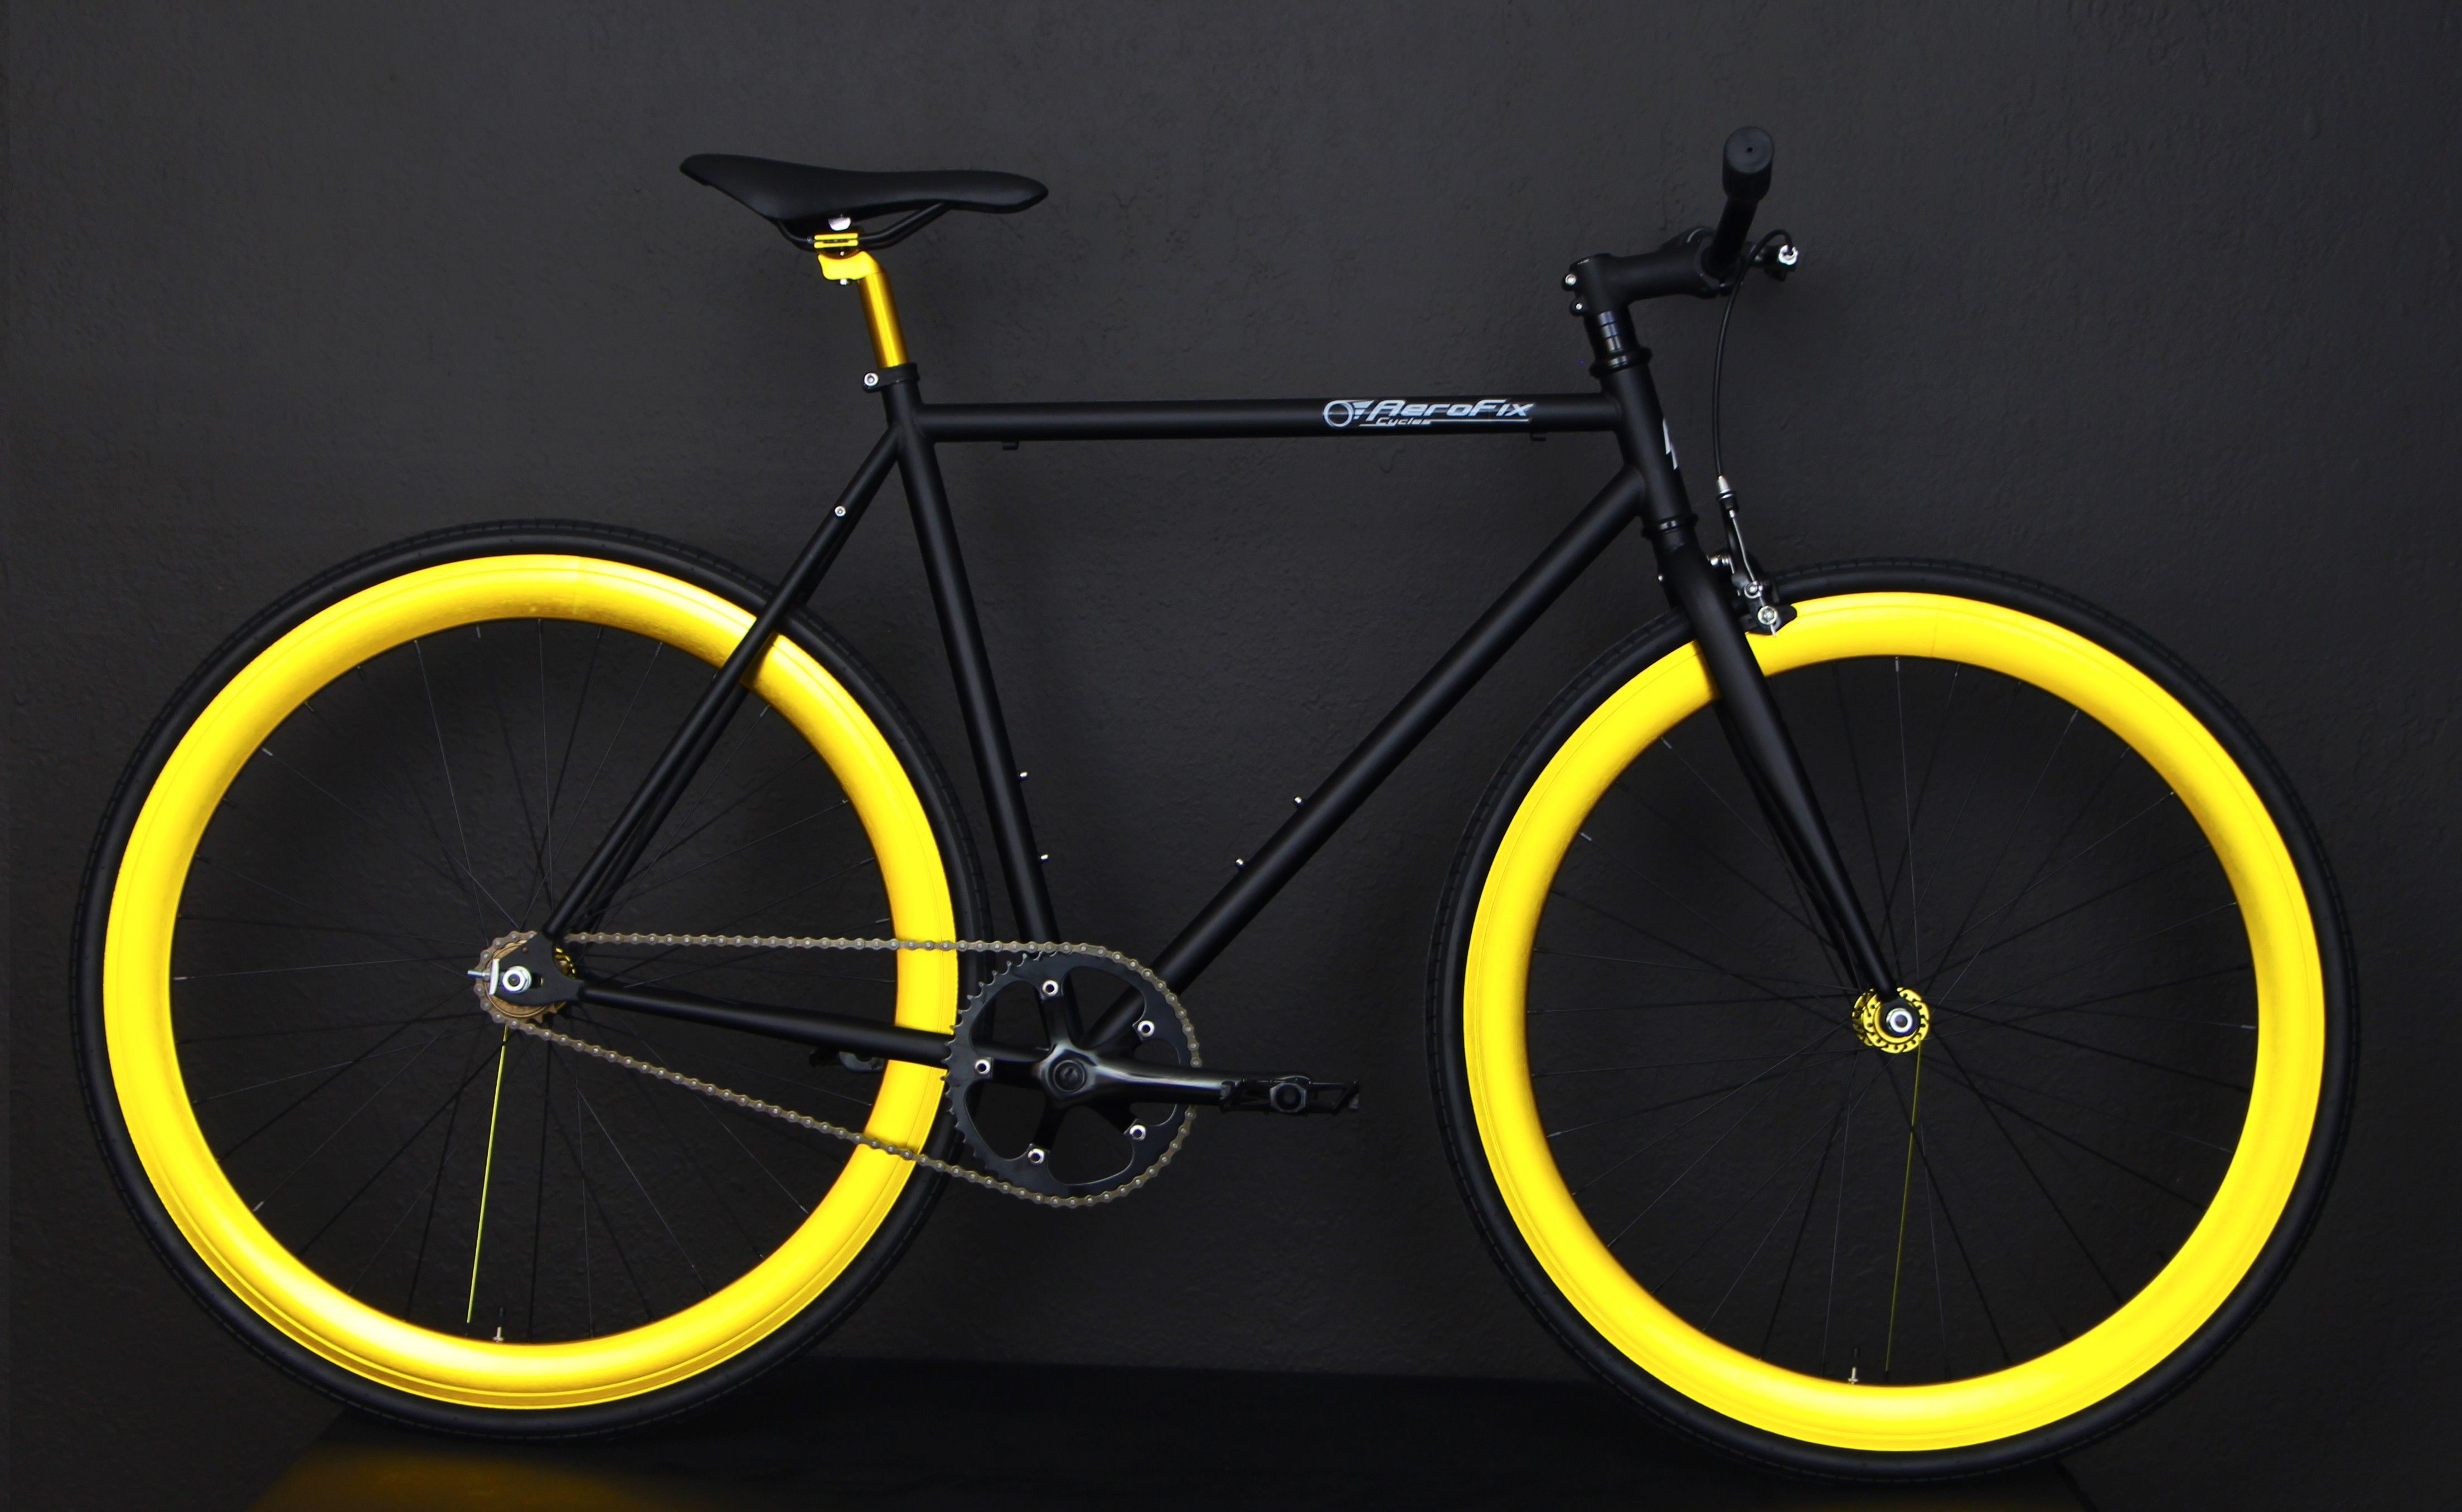 black and anodized gold fixie fixies fixie bikes. Black Bedroom Furniture Sets. Home Design Ideas